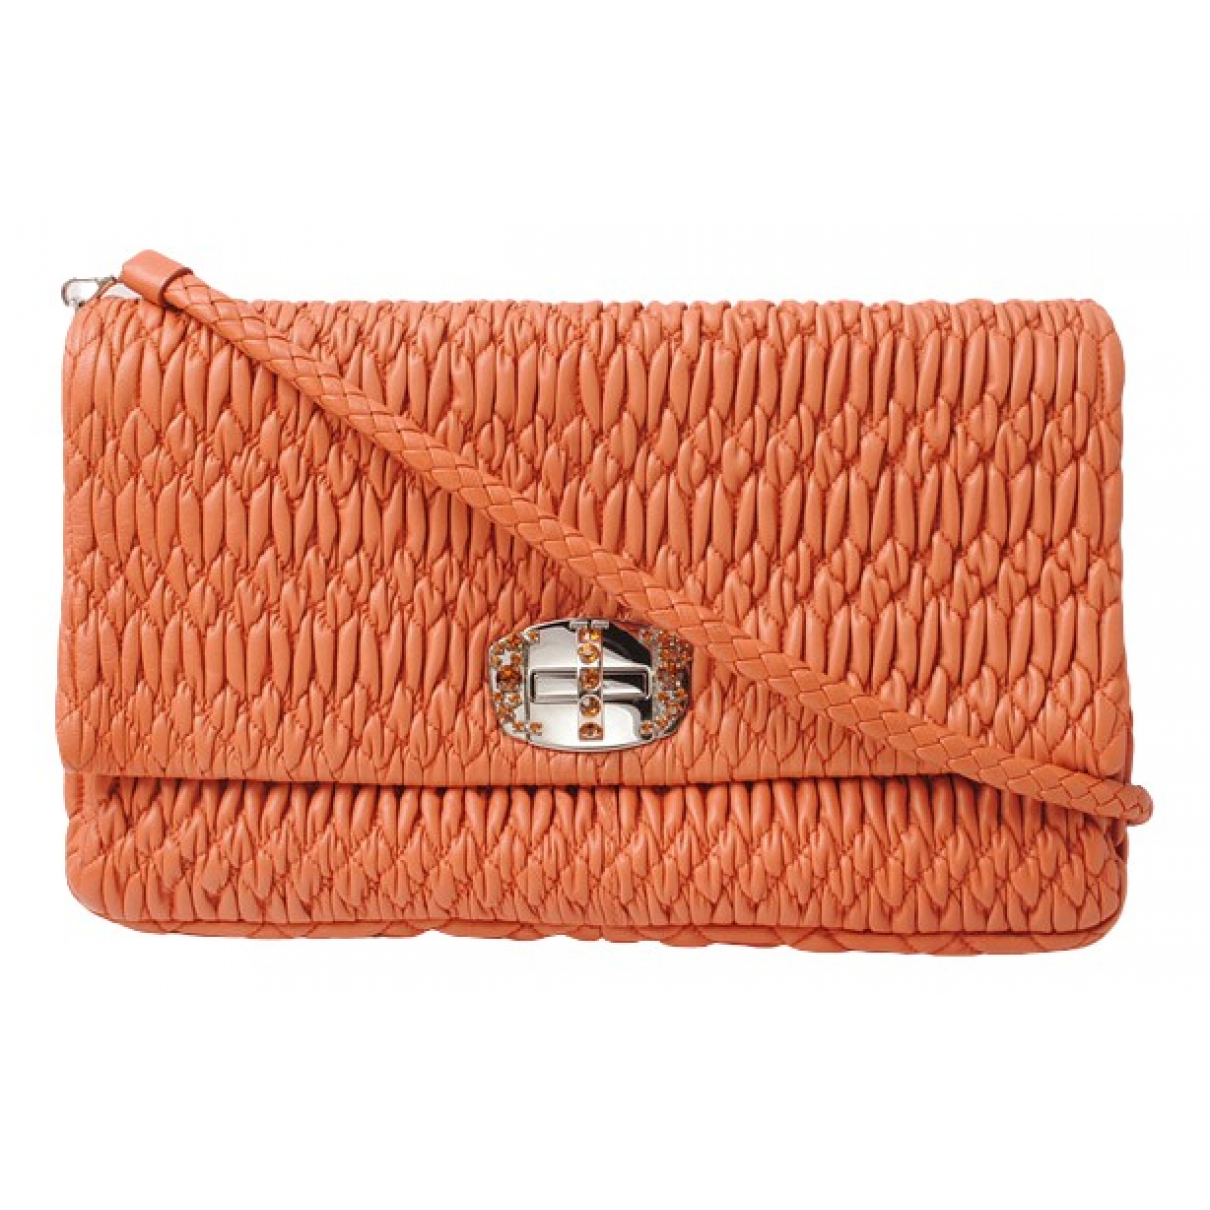 Miu Miu \N Orange Leather handbag for Women \N